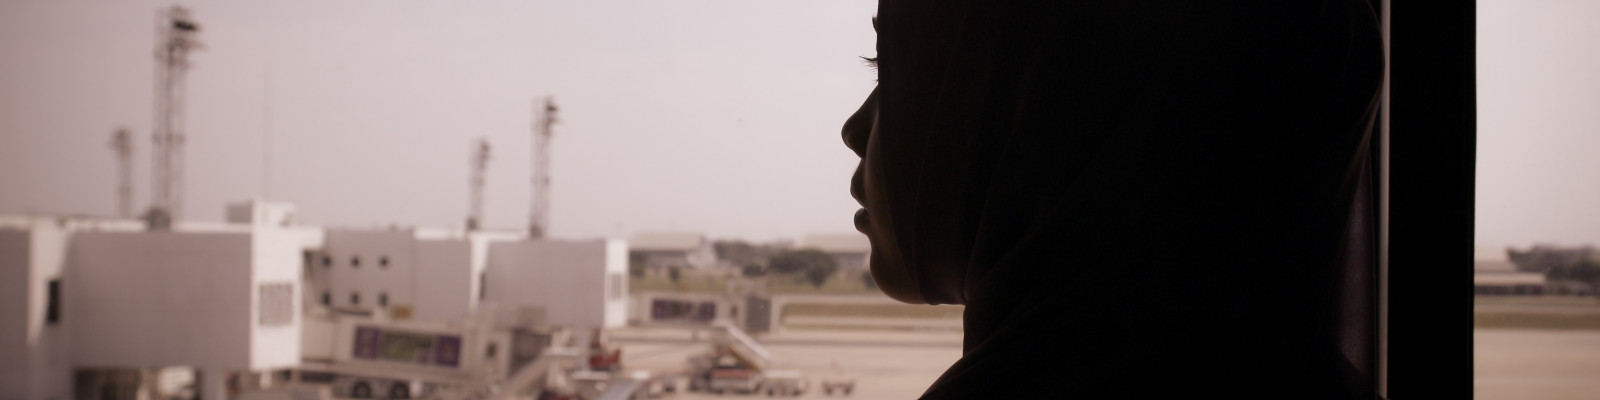 Muslim woman silhouette at the airport